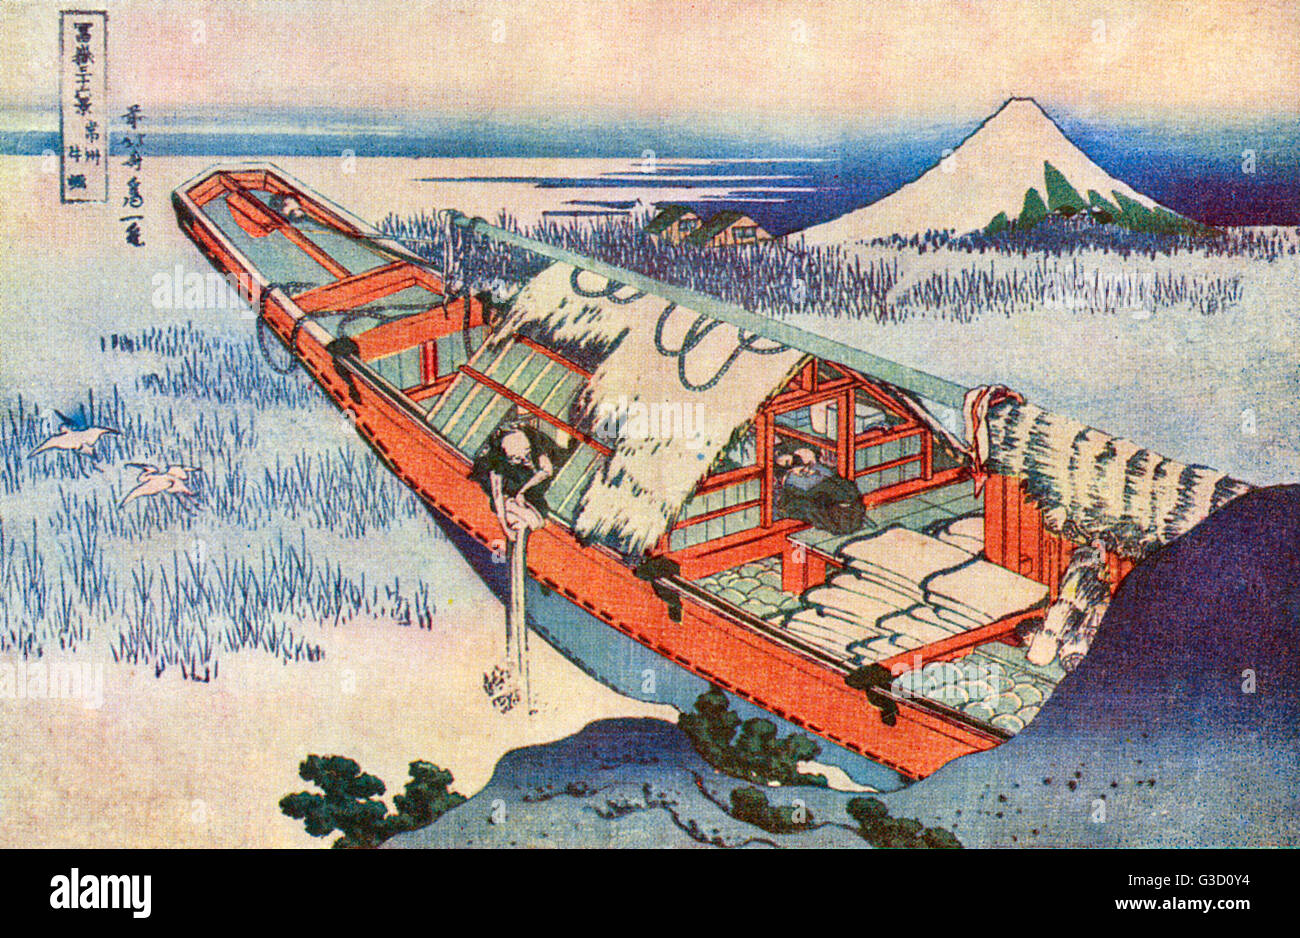 Reproduction of a woodcut by Katsushika Hokusai (1760 - 1849) entitled: 'Ushibori: A Junk moored among reeds'. - Stock Image